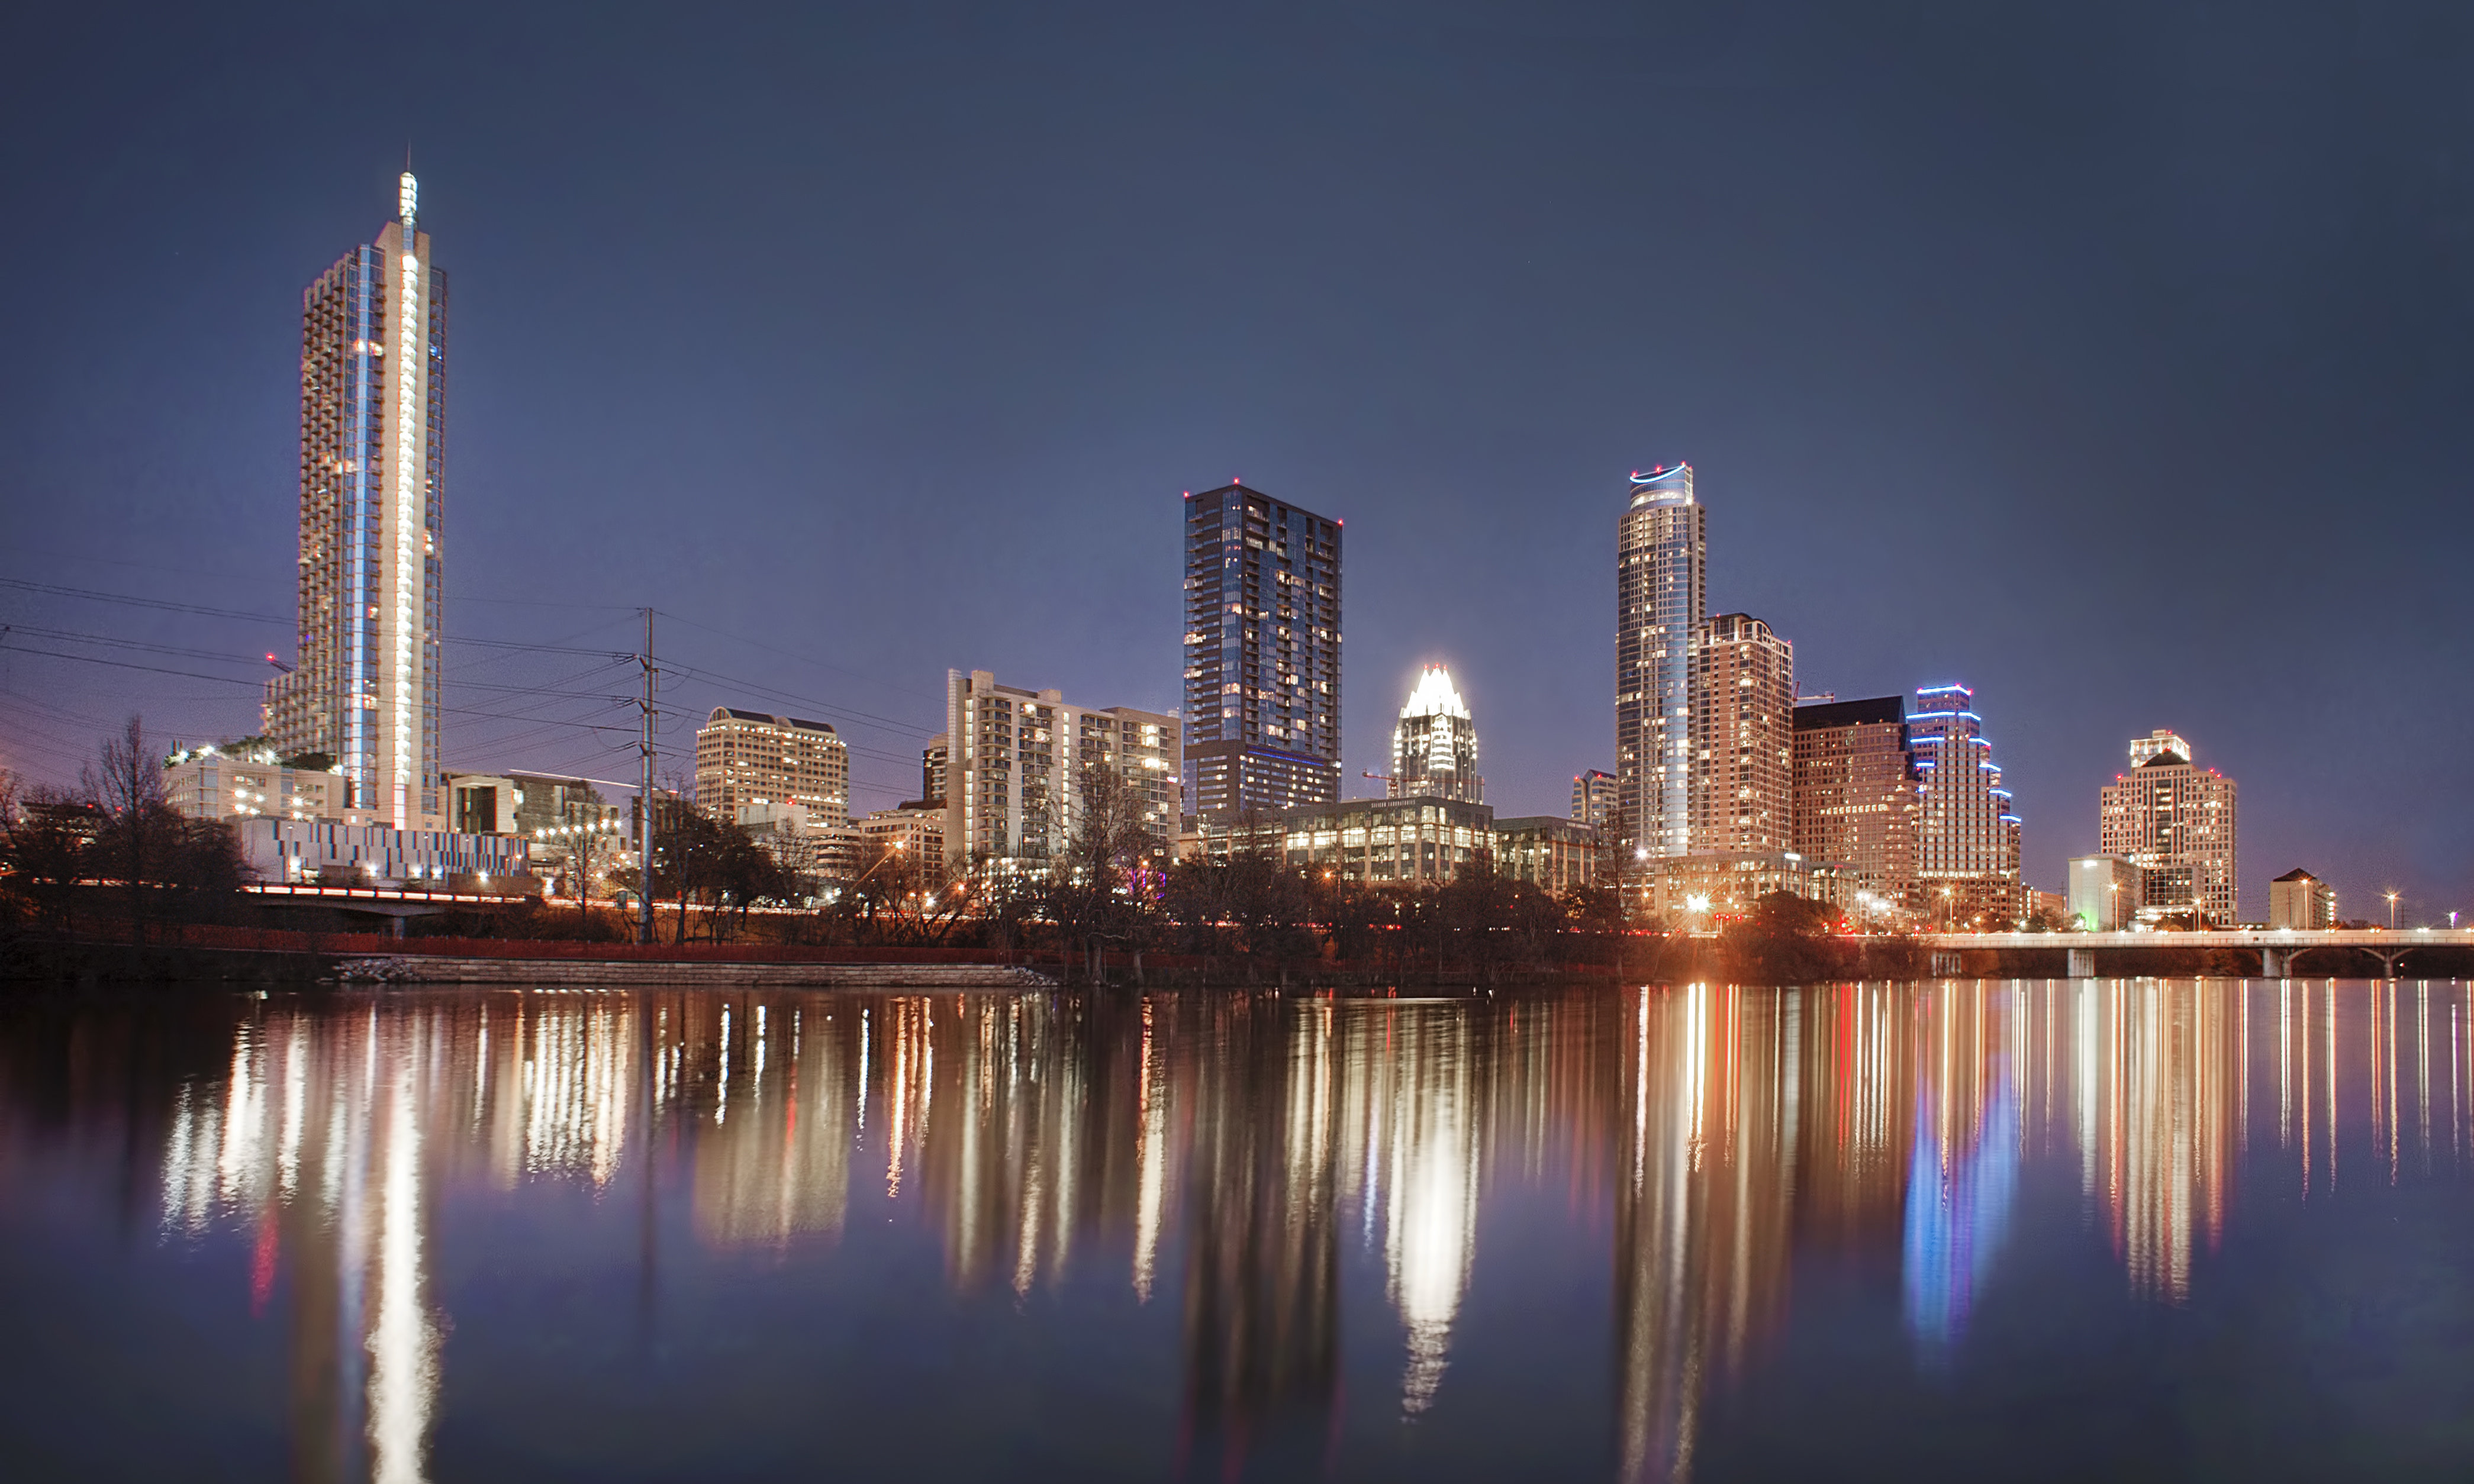 Austin was named by Forbes magazine as the fastest growing city in the country.